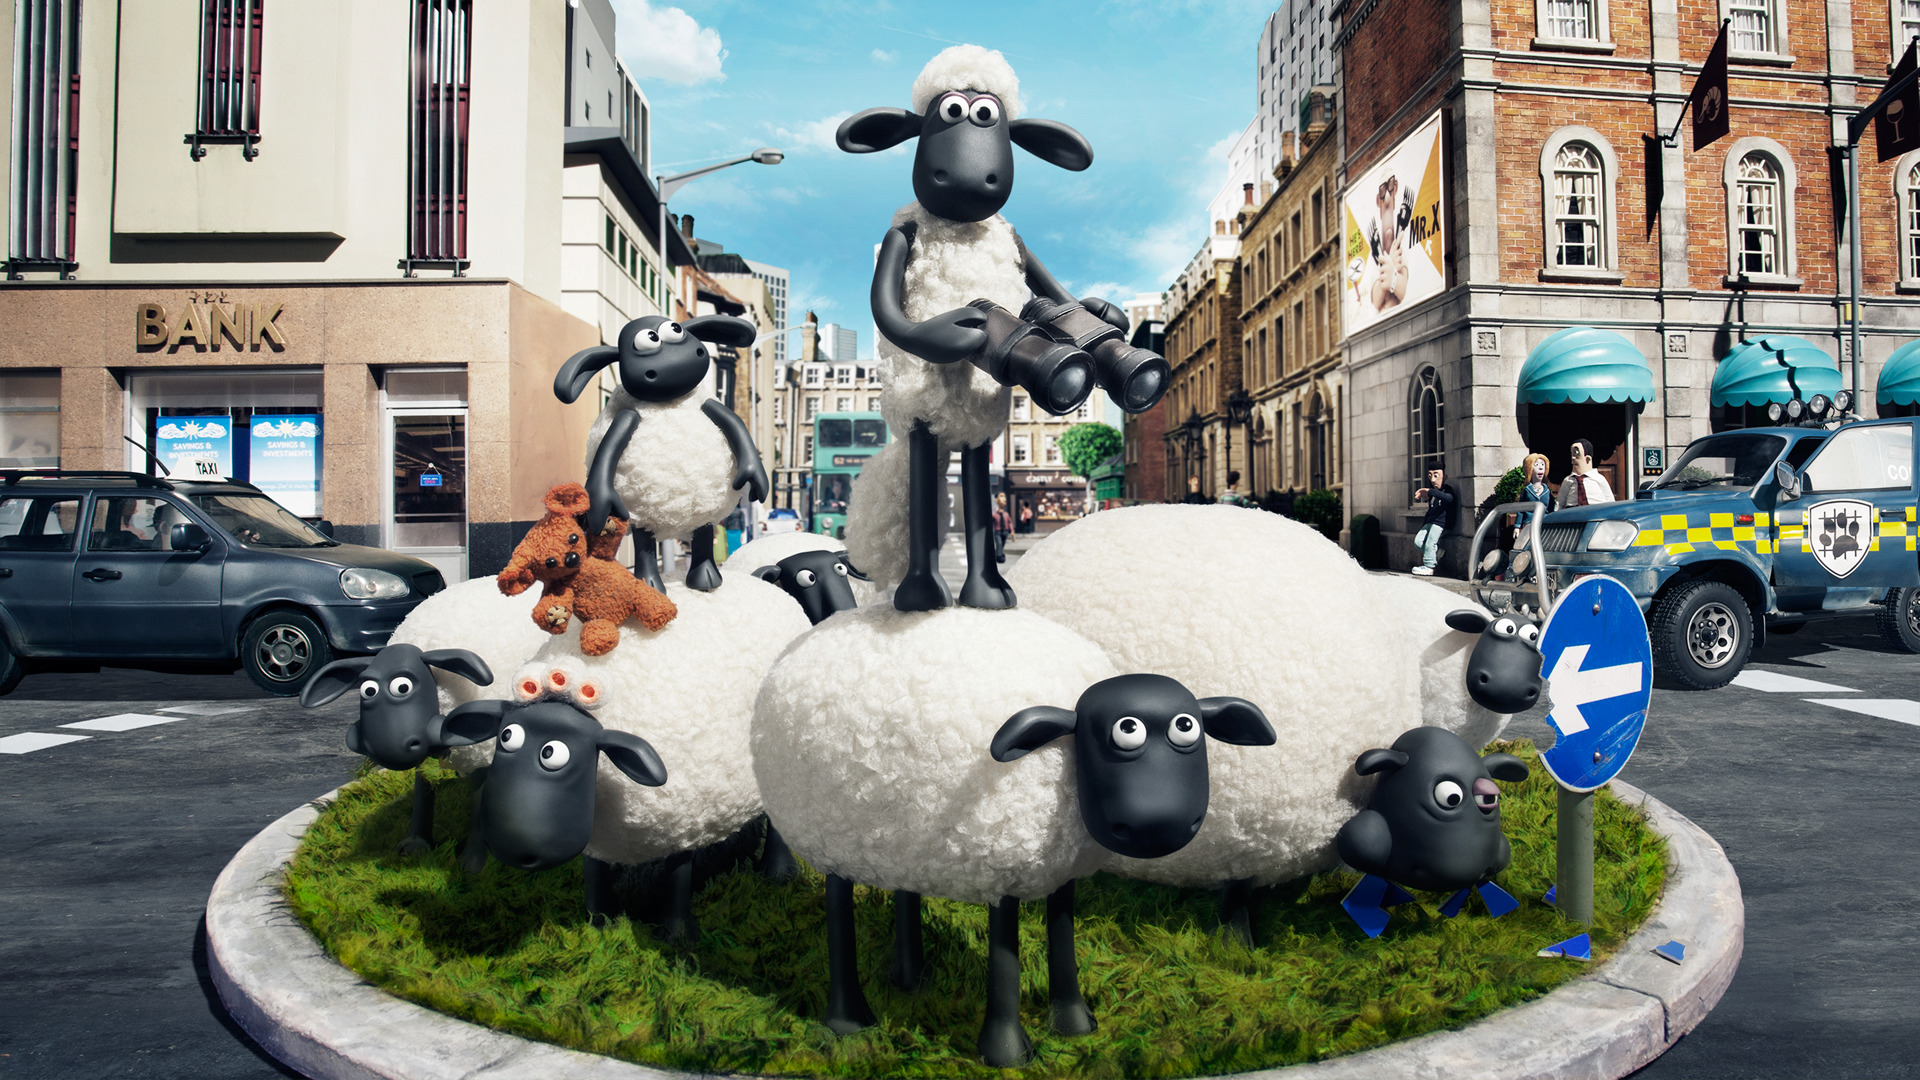 shaun the sheep full movie download in hd